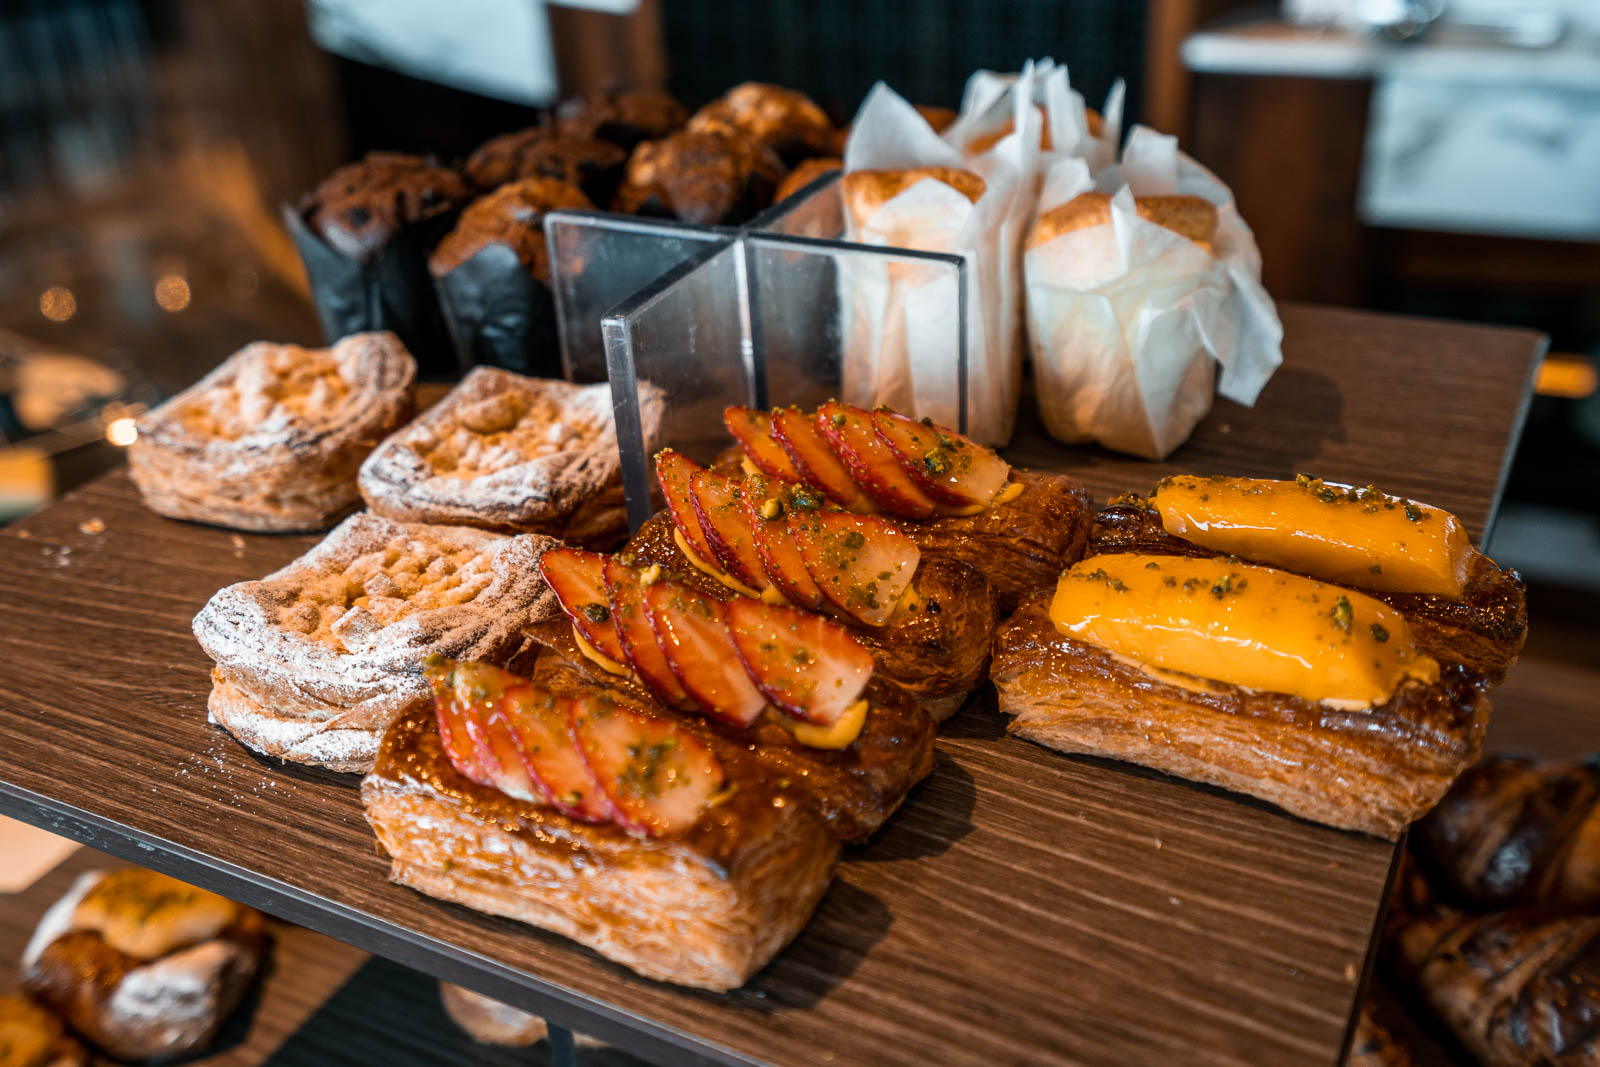 Pastry selections for breakfast